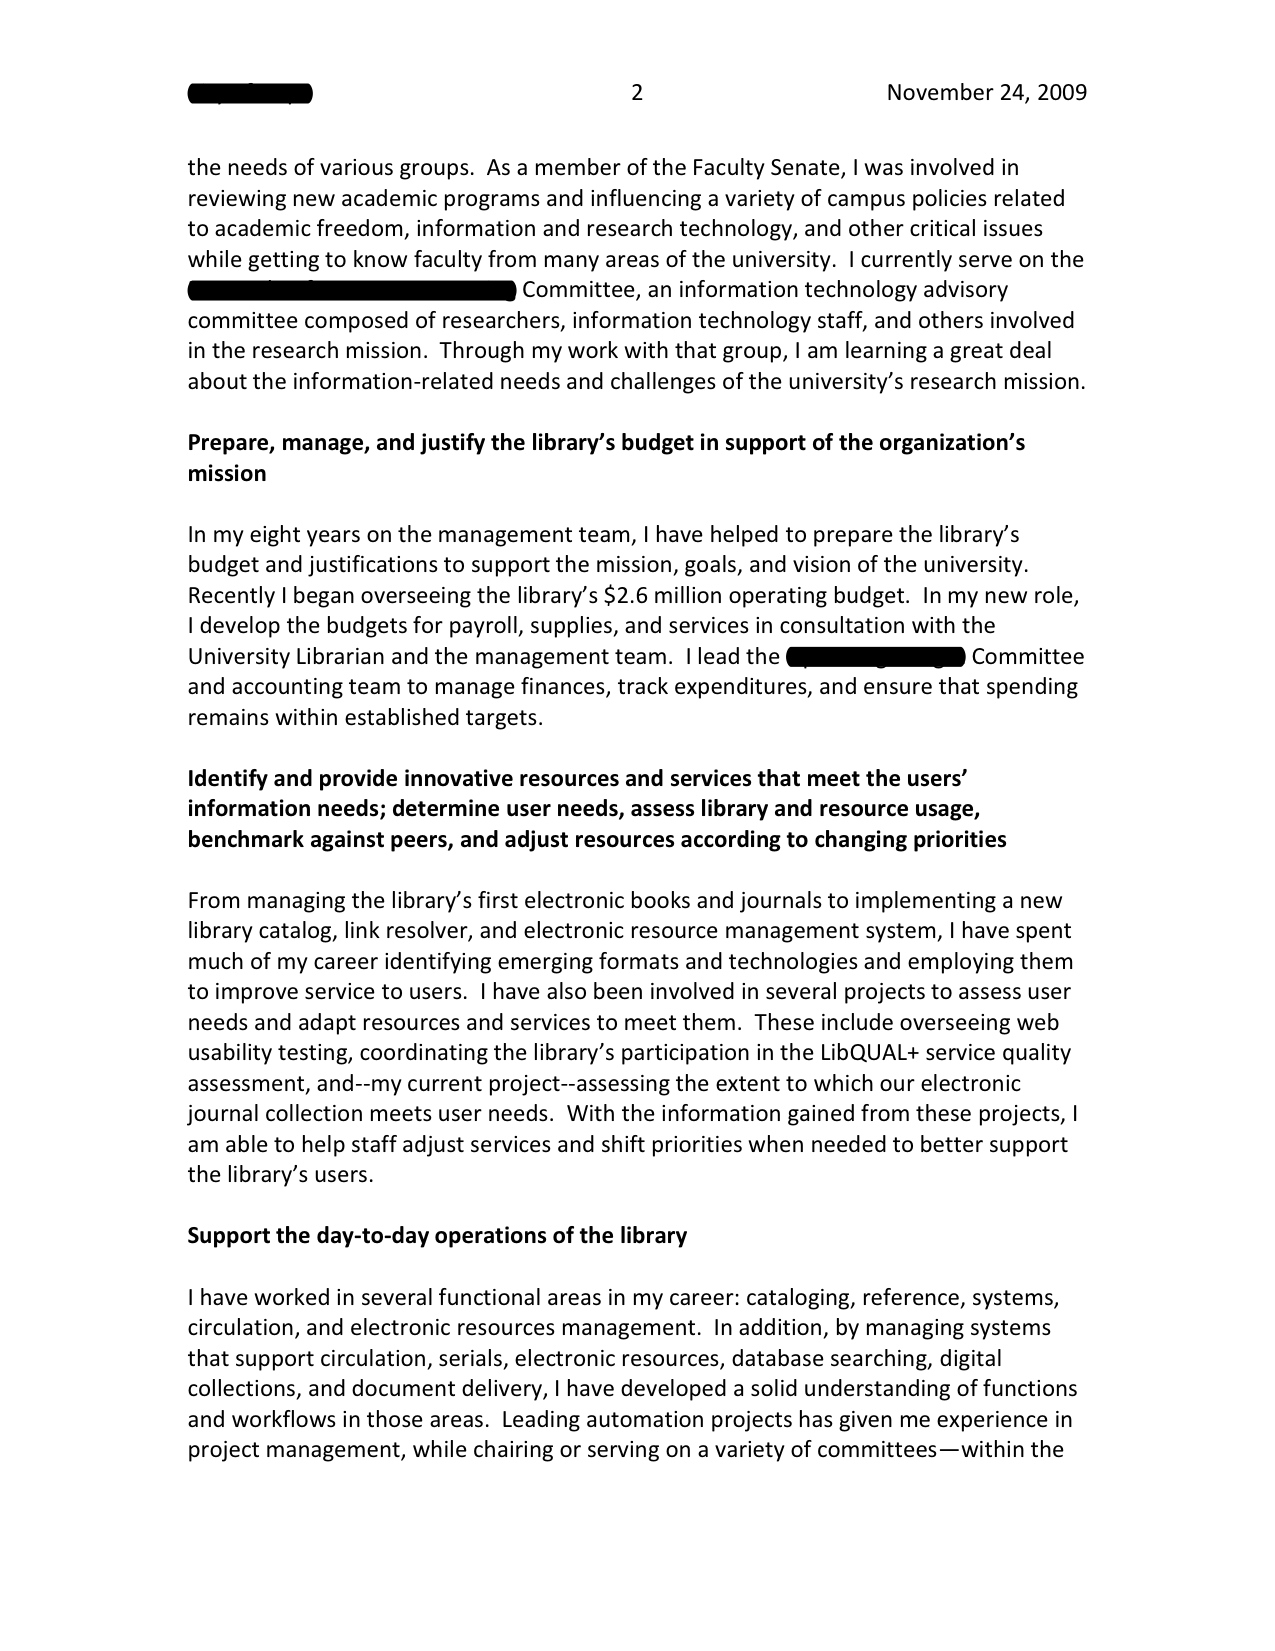 share this cover letter - Resume Cover Letter Science